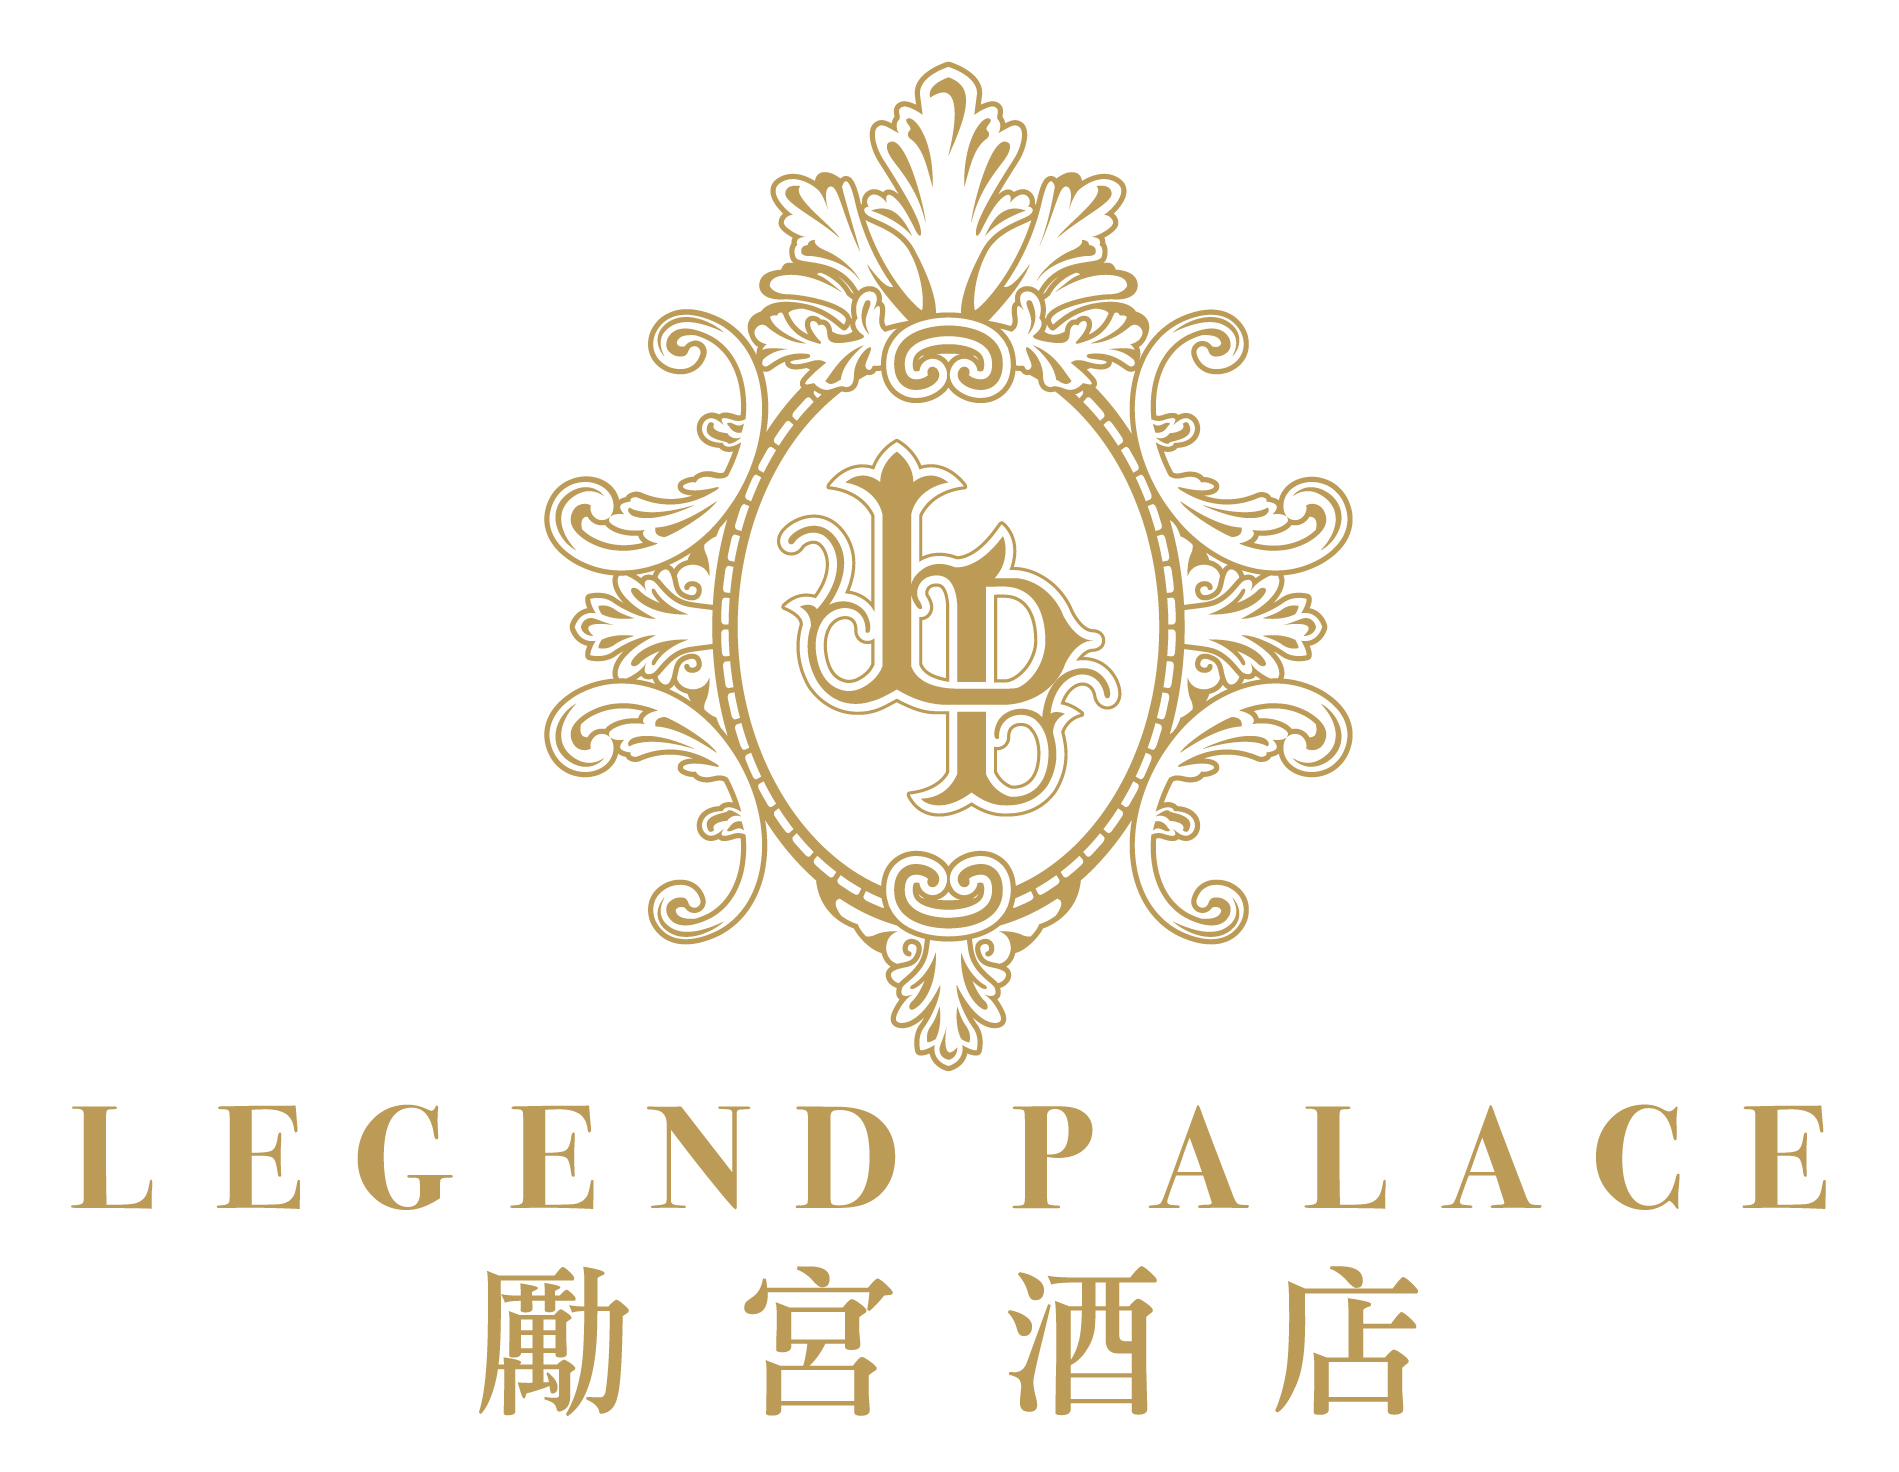 Legend Palace LOGO.jpg